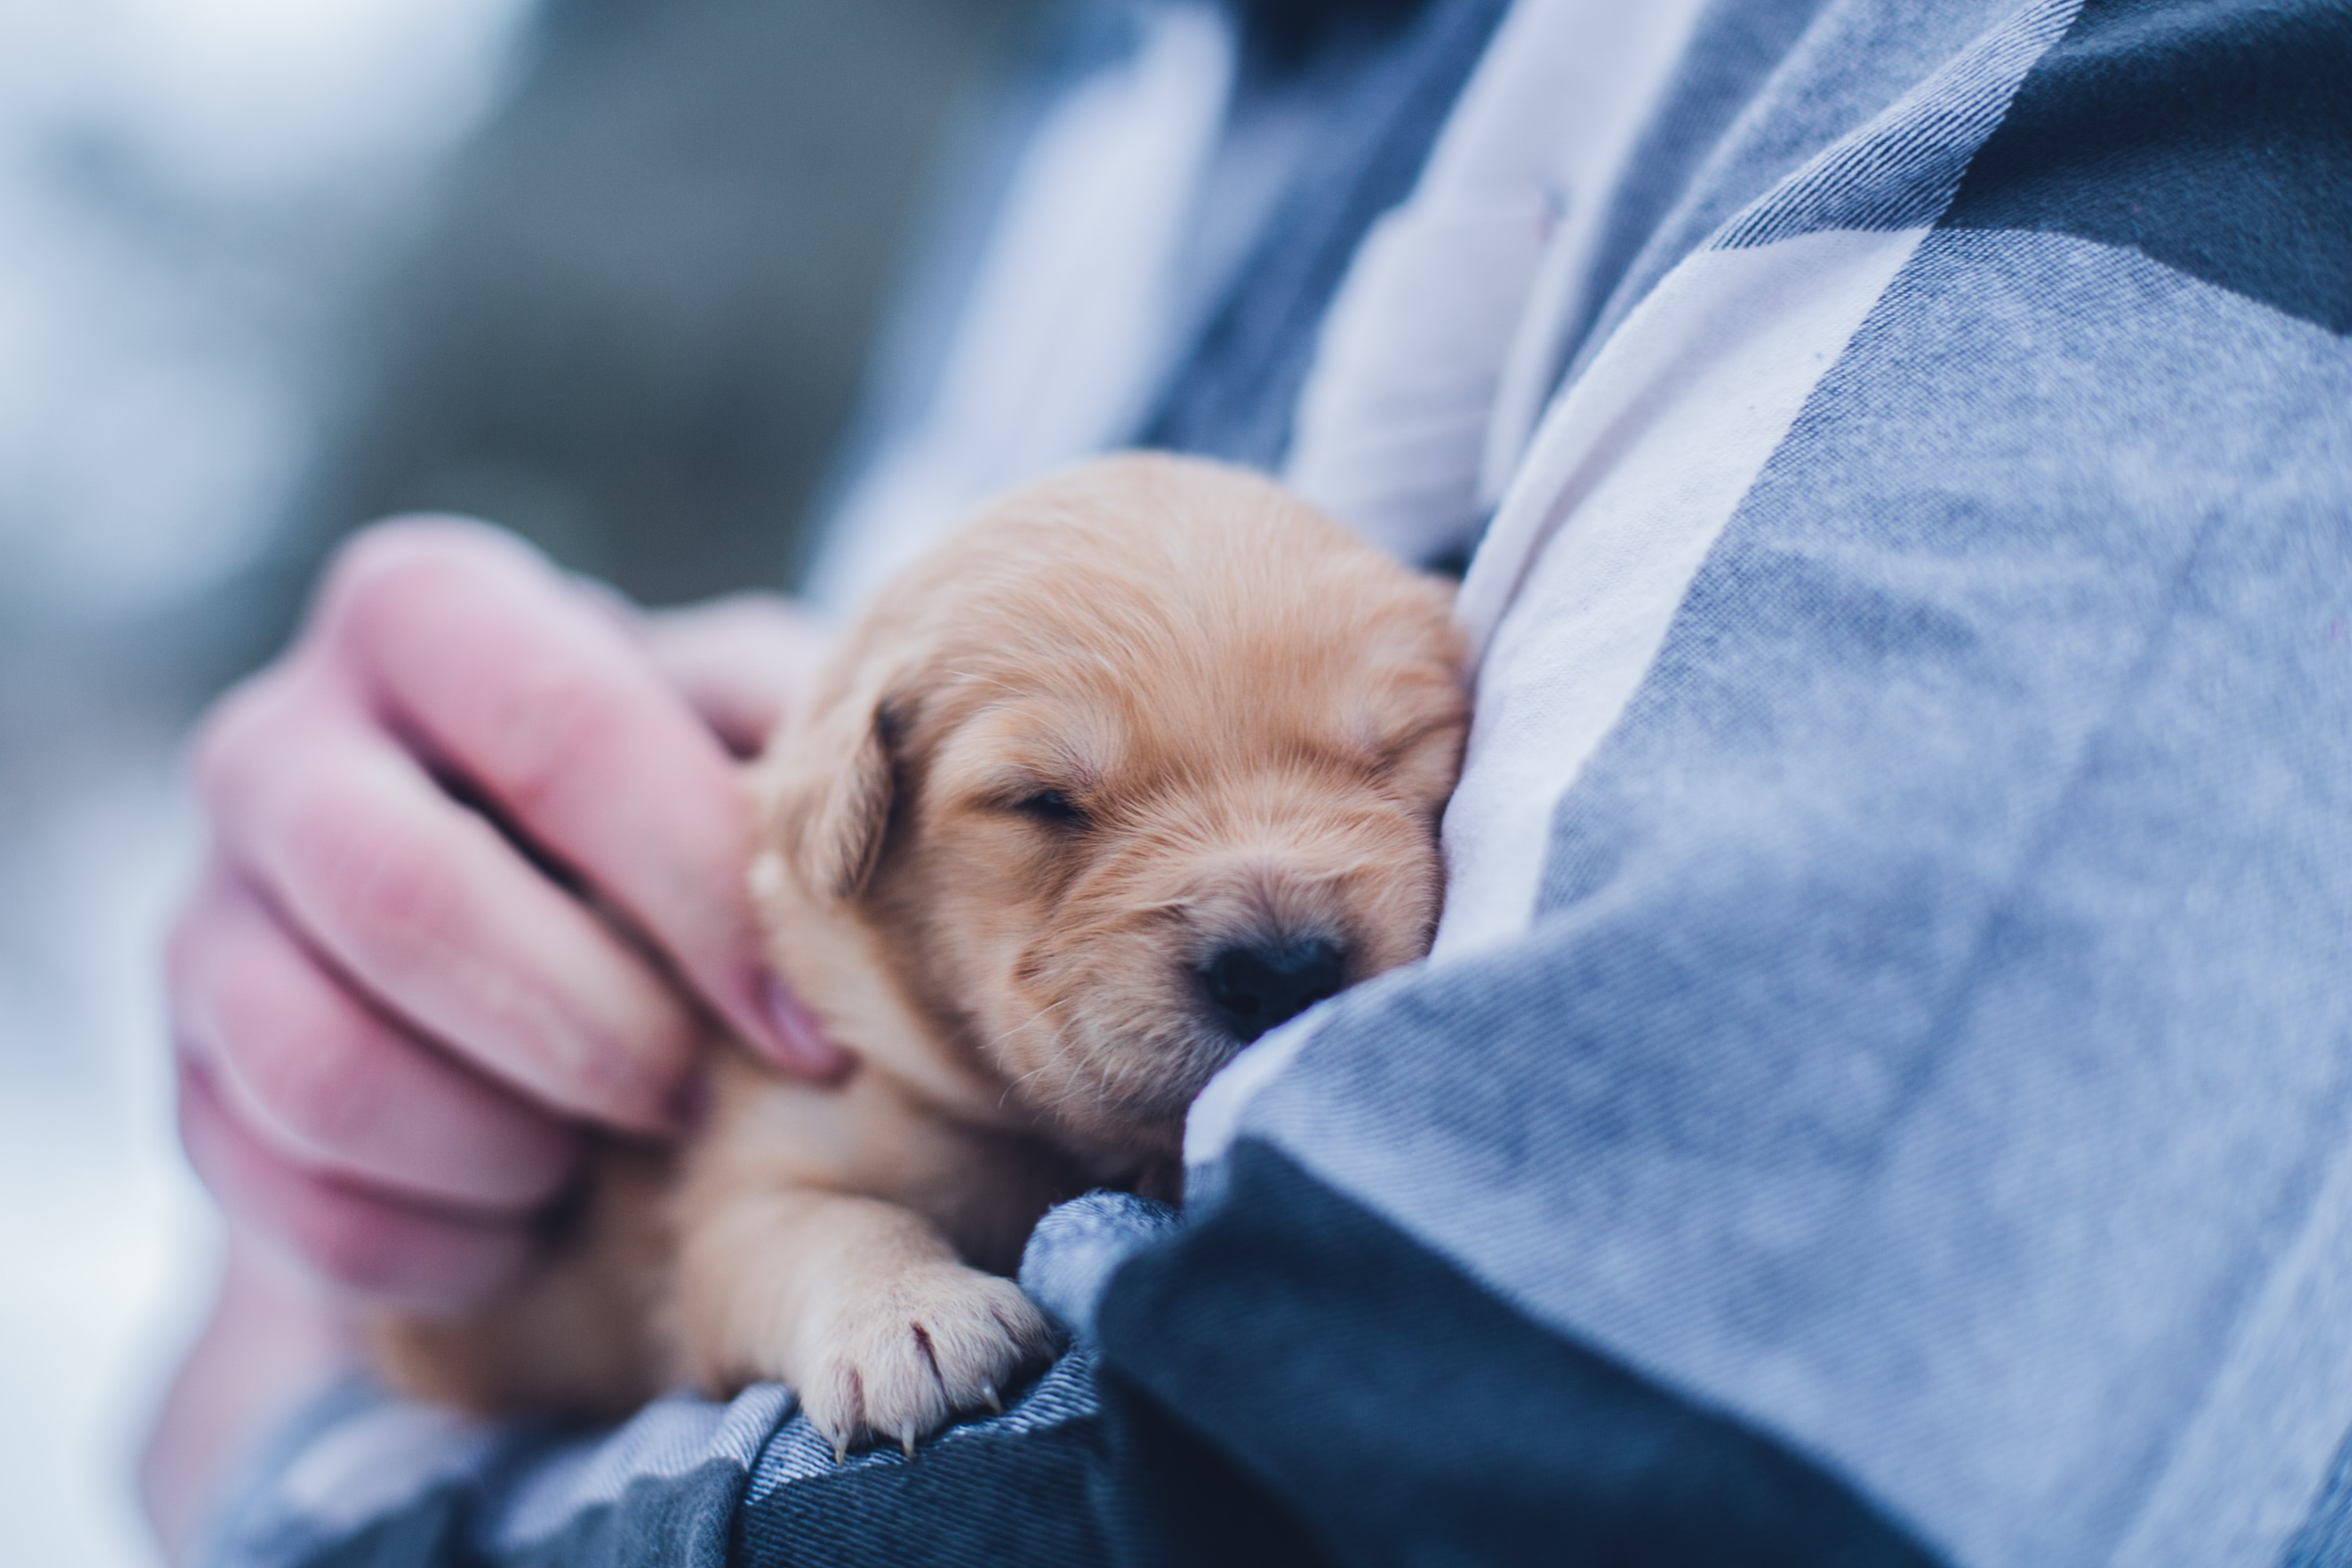 new puppy dog sleeping in a persons hands.